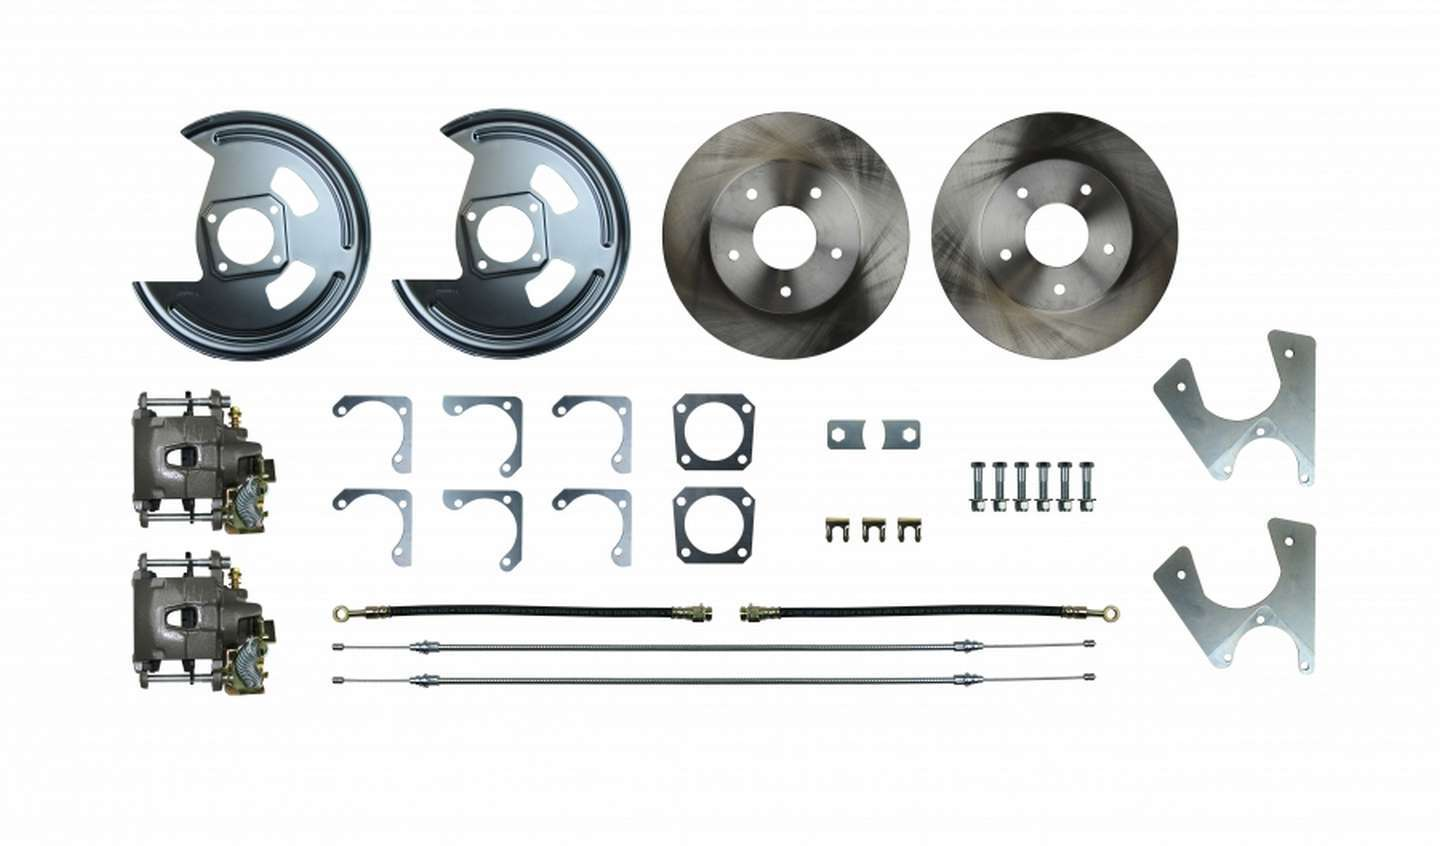 Right Stuff Detailing AFXRD05 Brake System, Disc Conversion, Rear, 1 Piston Caliper, 11.000 in Rotor, Offset Hat, Iron, Natural, GM 10-Bolt / 12-Bolt, Kit